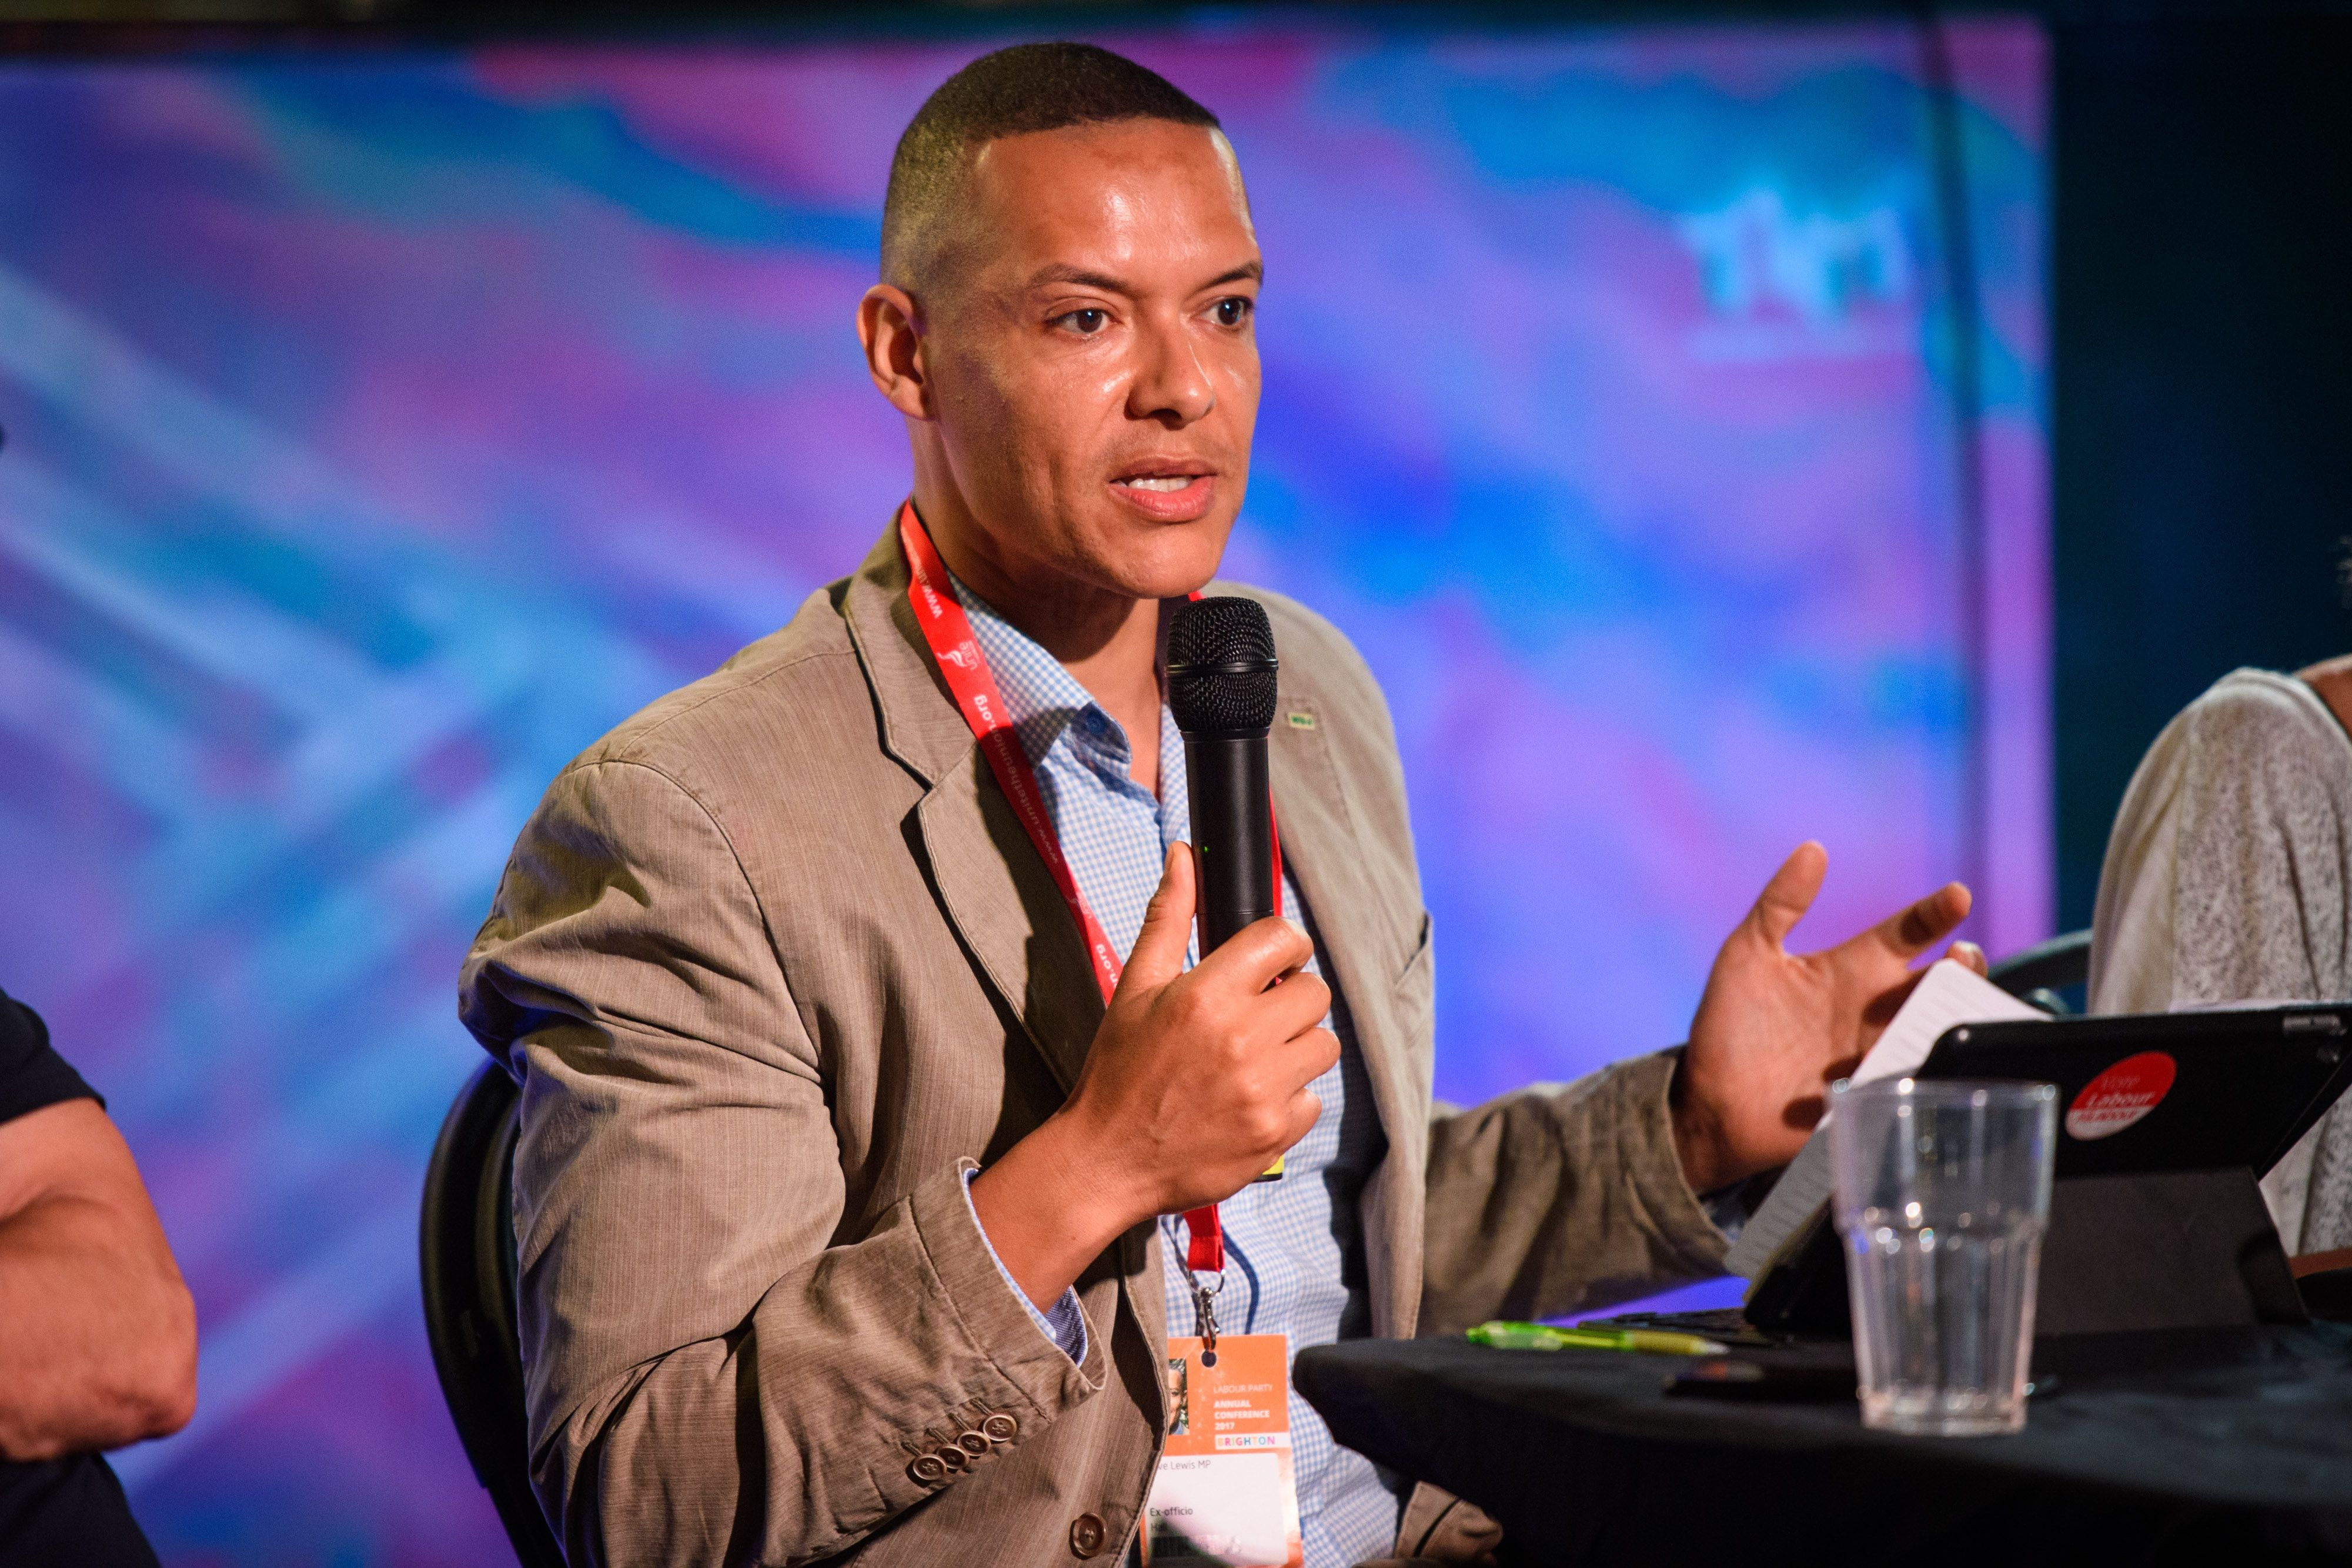 Labour Shadow Ministers Clive Lewis And Marsha De Cordova Back Second Brexit